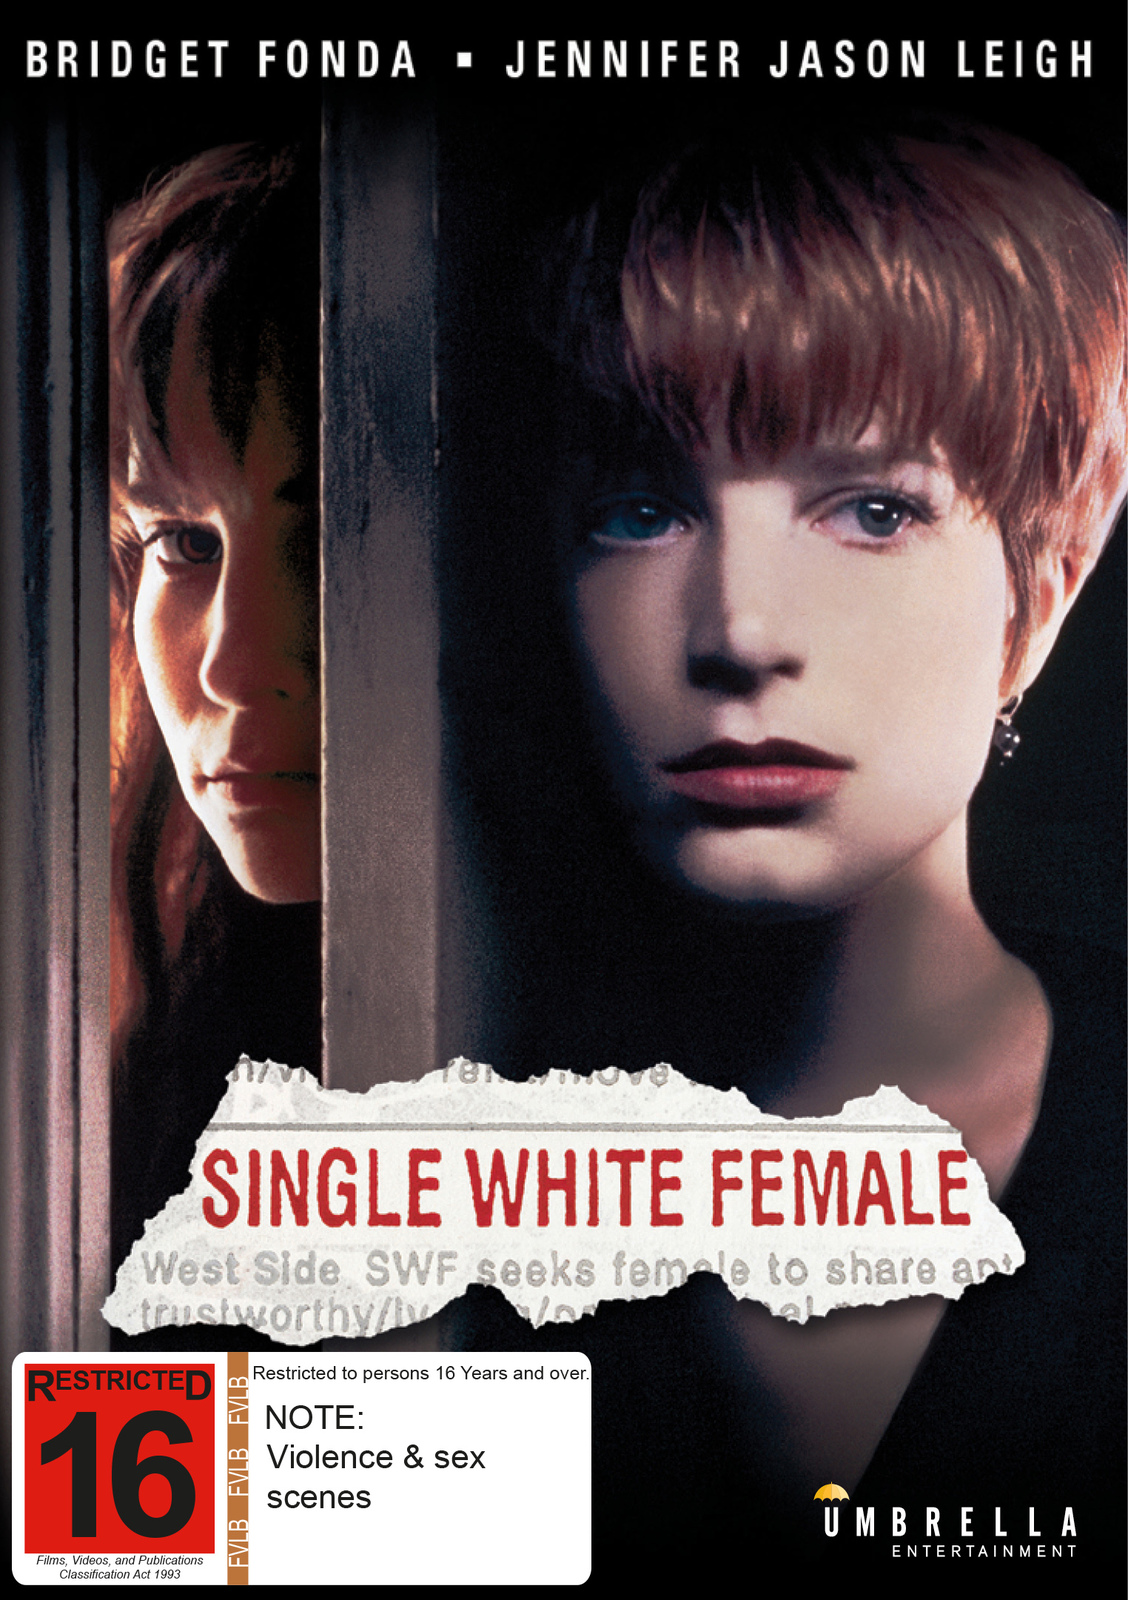 Single White Female image